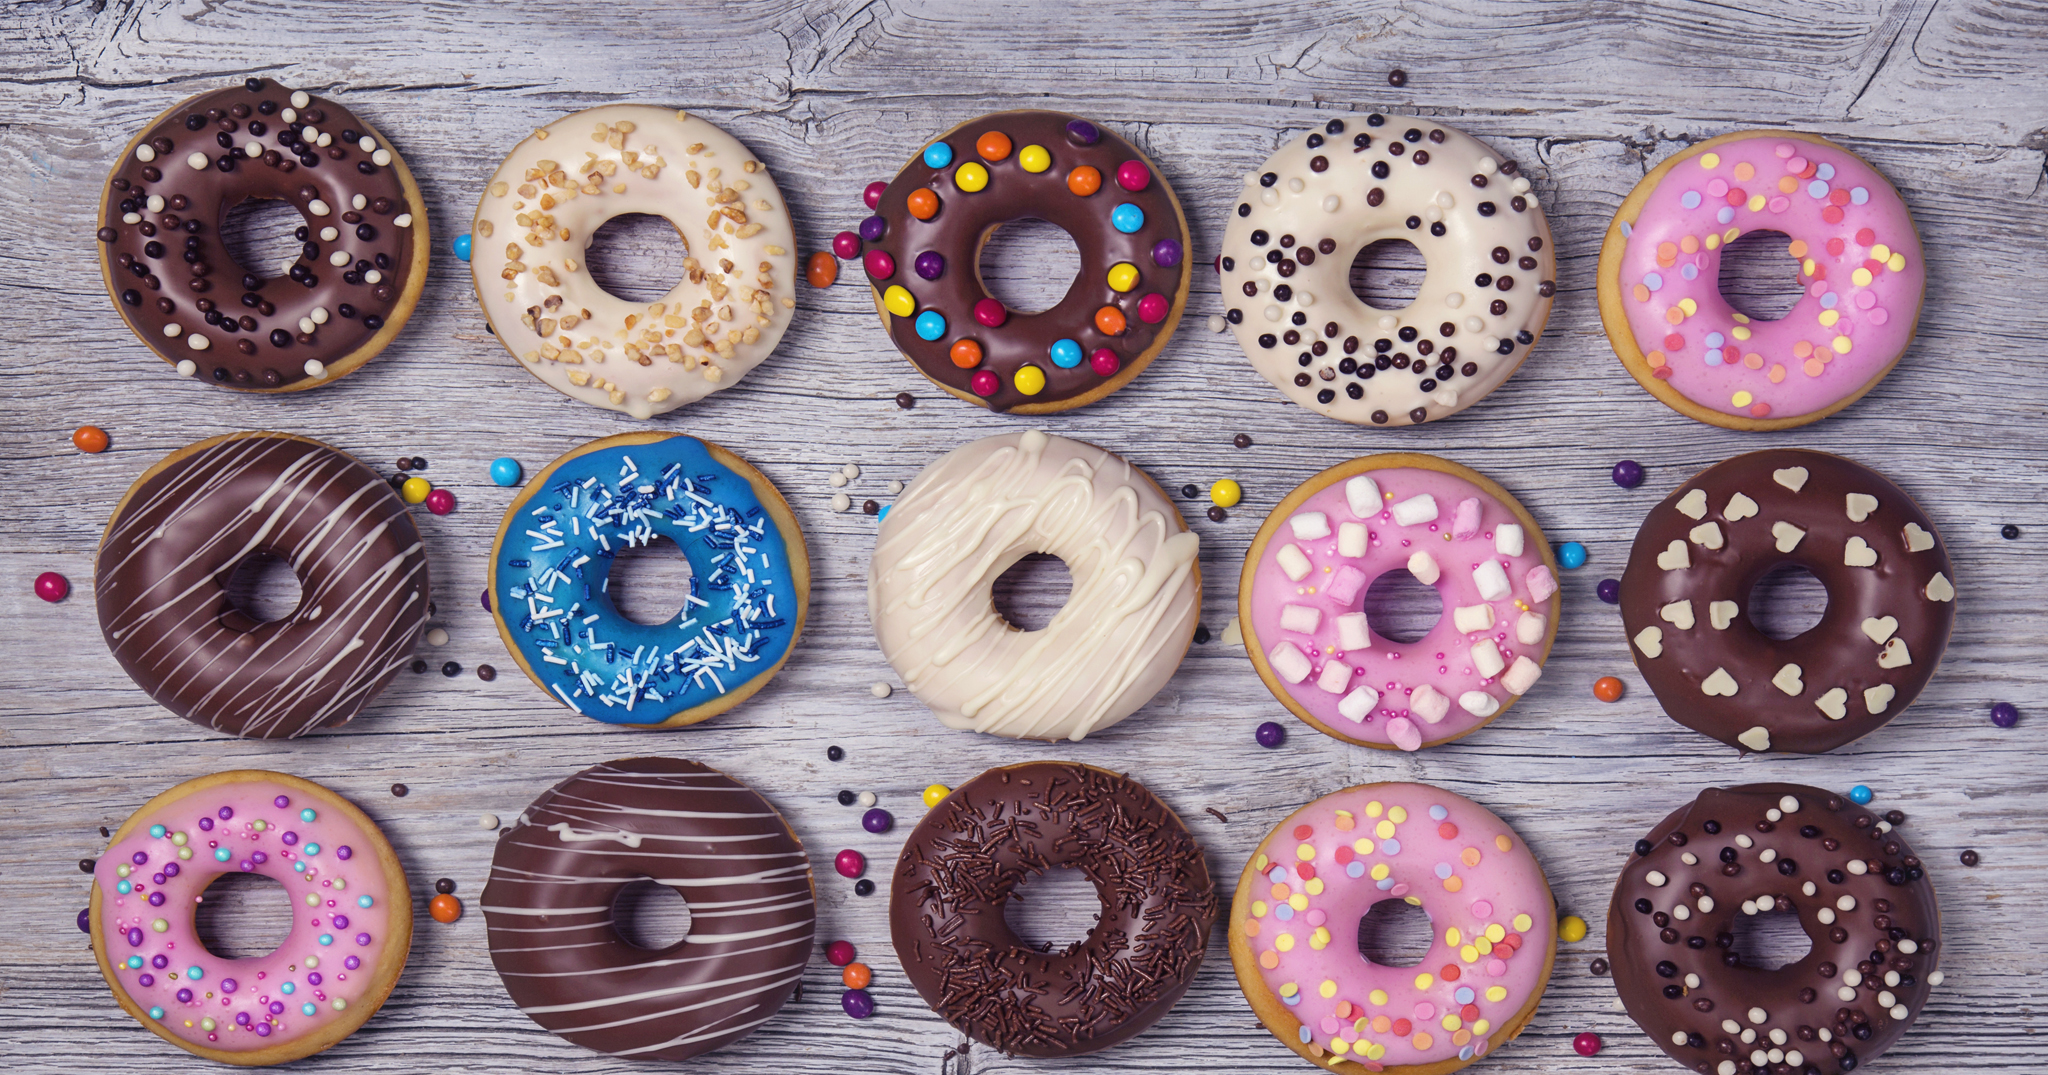 BridalPulse: 8 Reasons You Need A Doughnut Wall At Your Wedding | Photo: iStock | Follow @bridalpulse for more wedding inspiration!